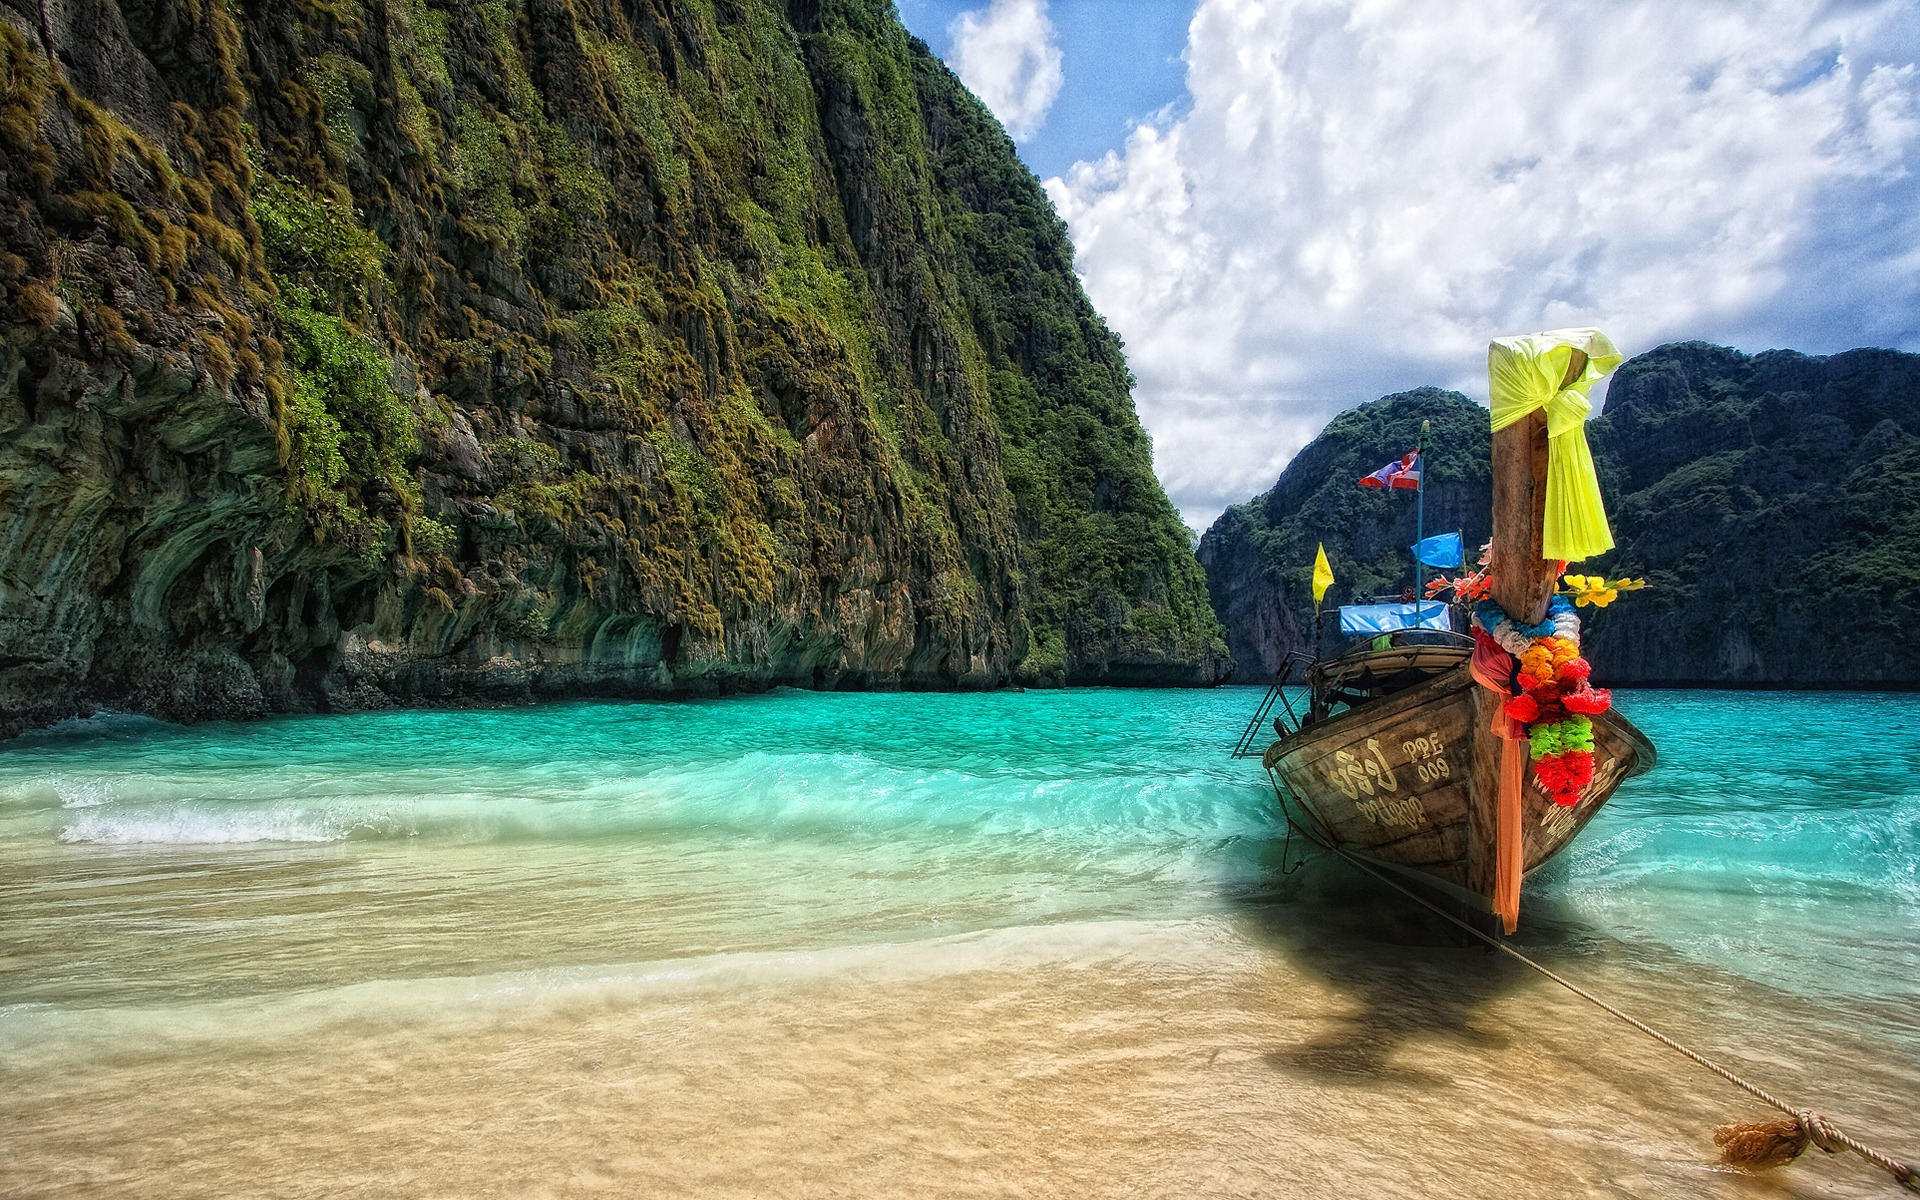 Maya Bay Wallpaper Thailand World Wallpapers in jpg format for free ...